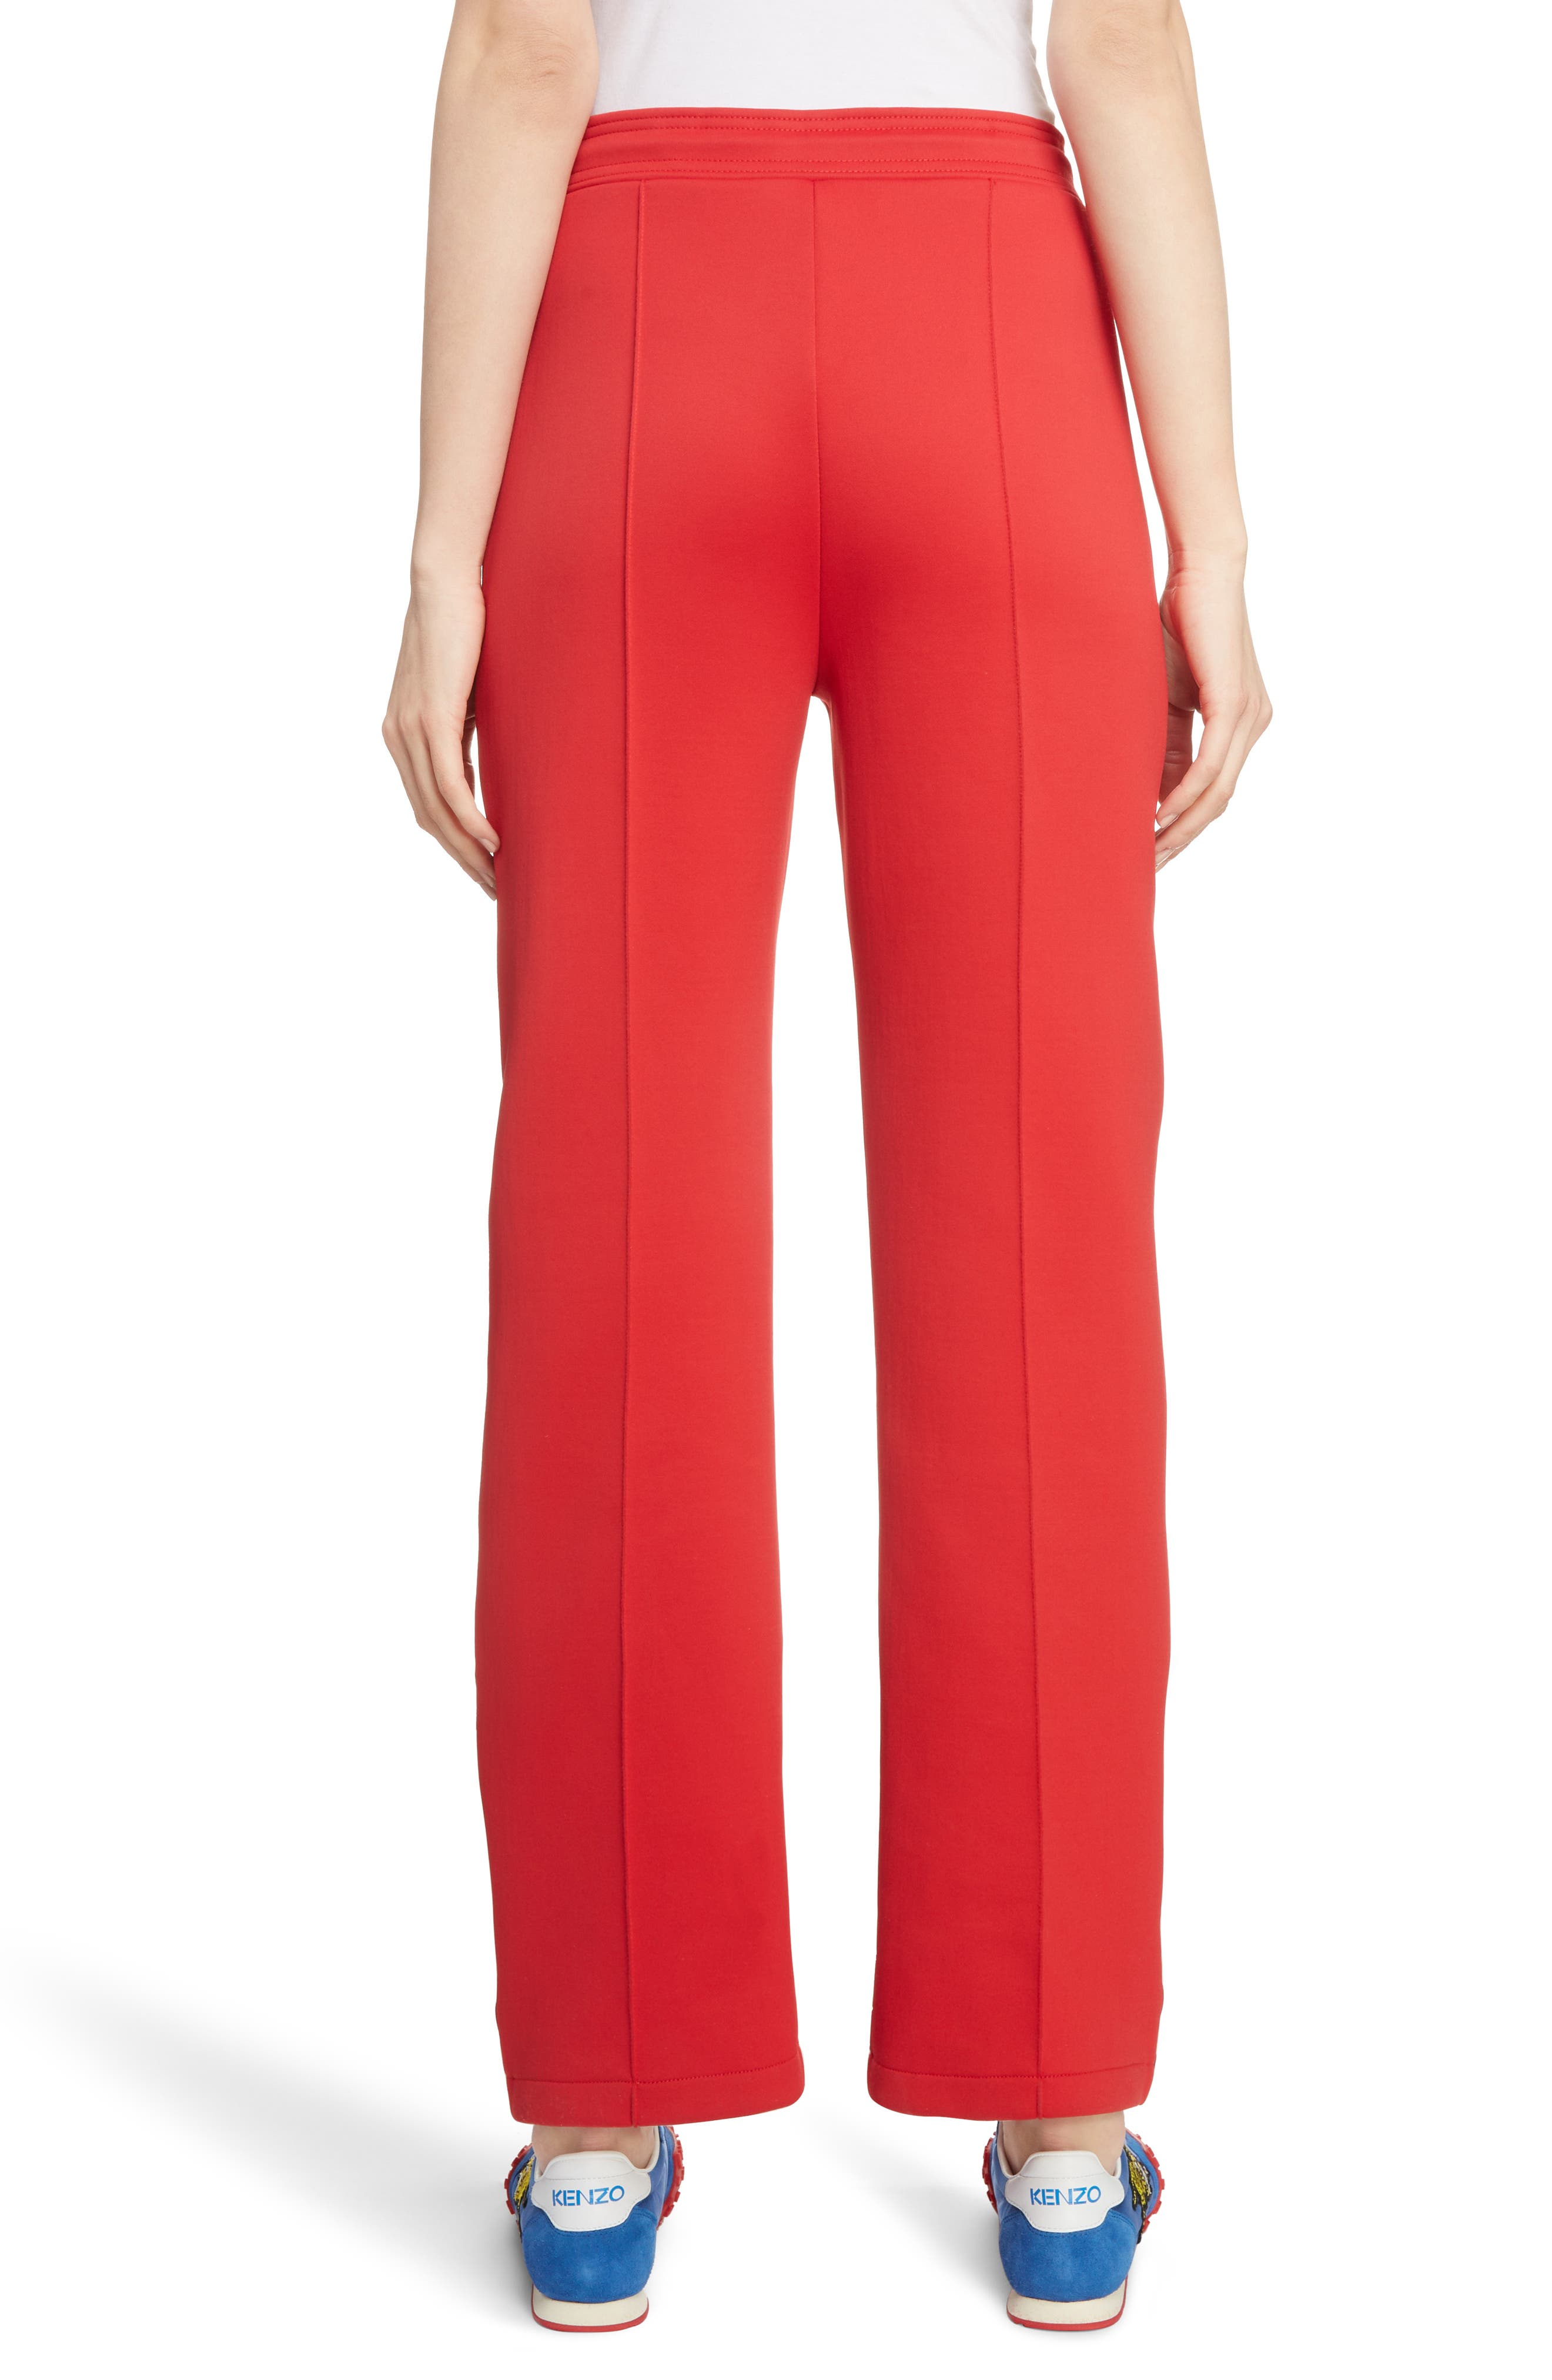 Sport Crop Track Pants,                             Alternate thumbnail 2, color,                             JERSEY RED